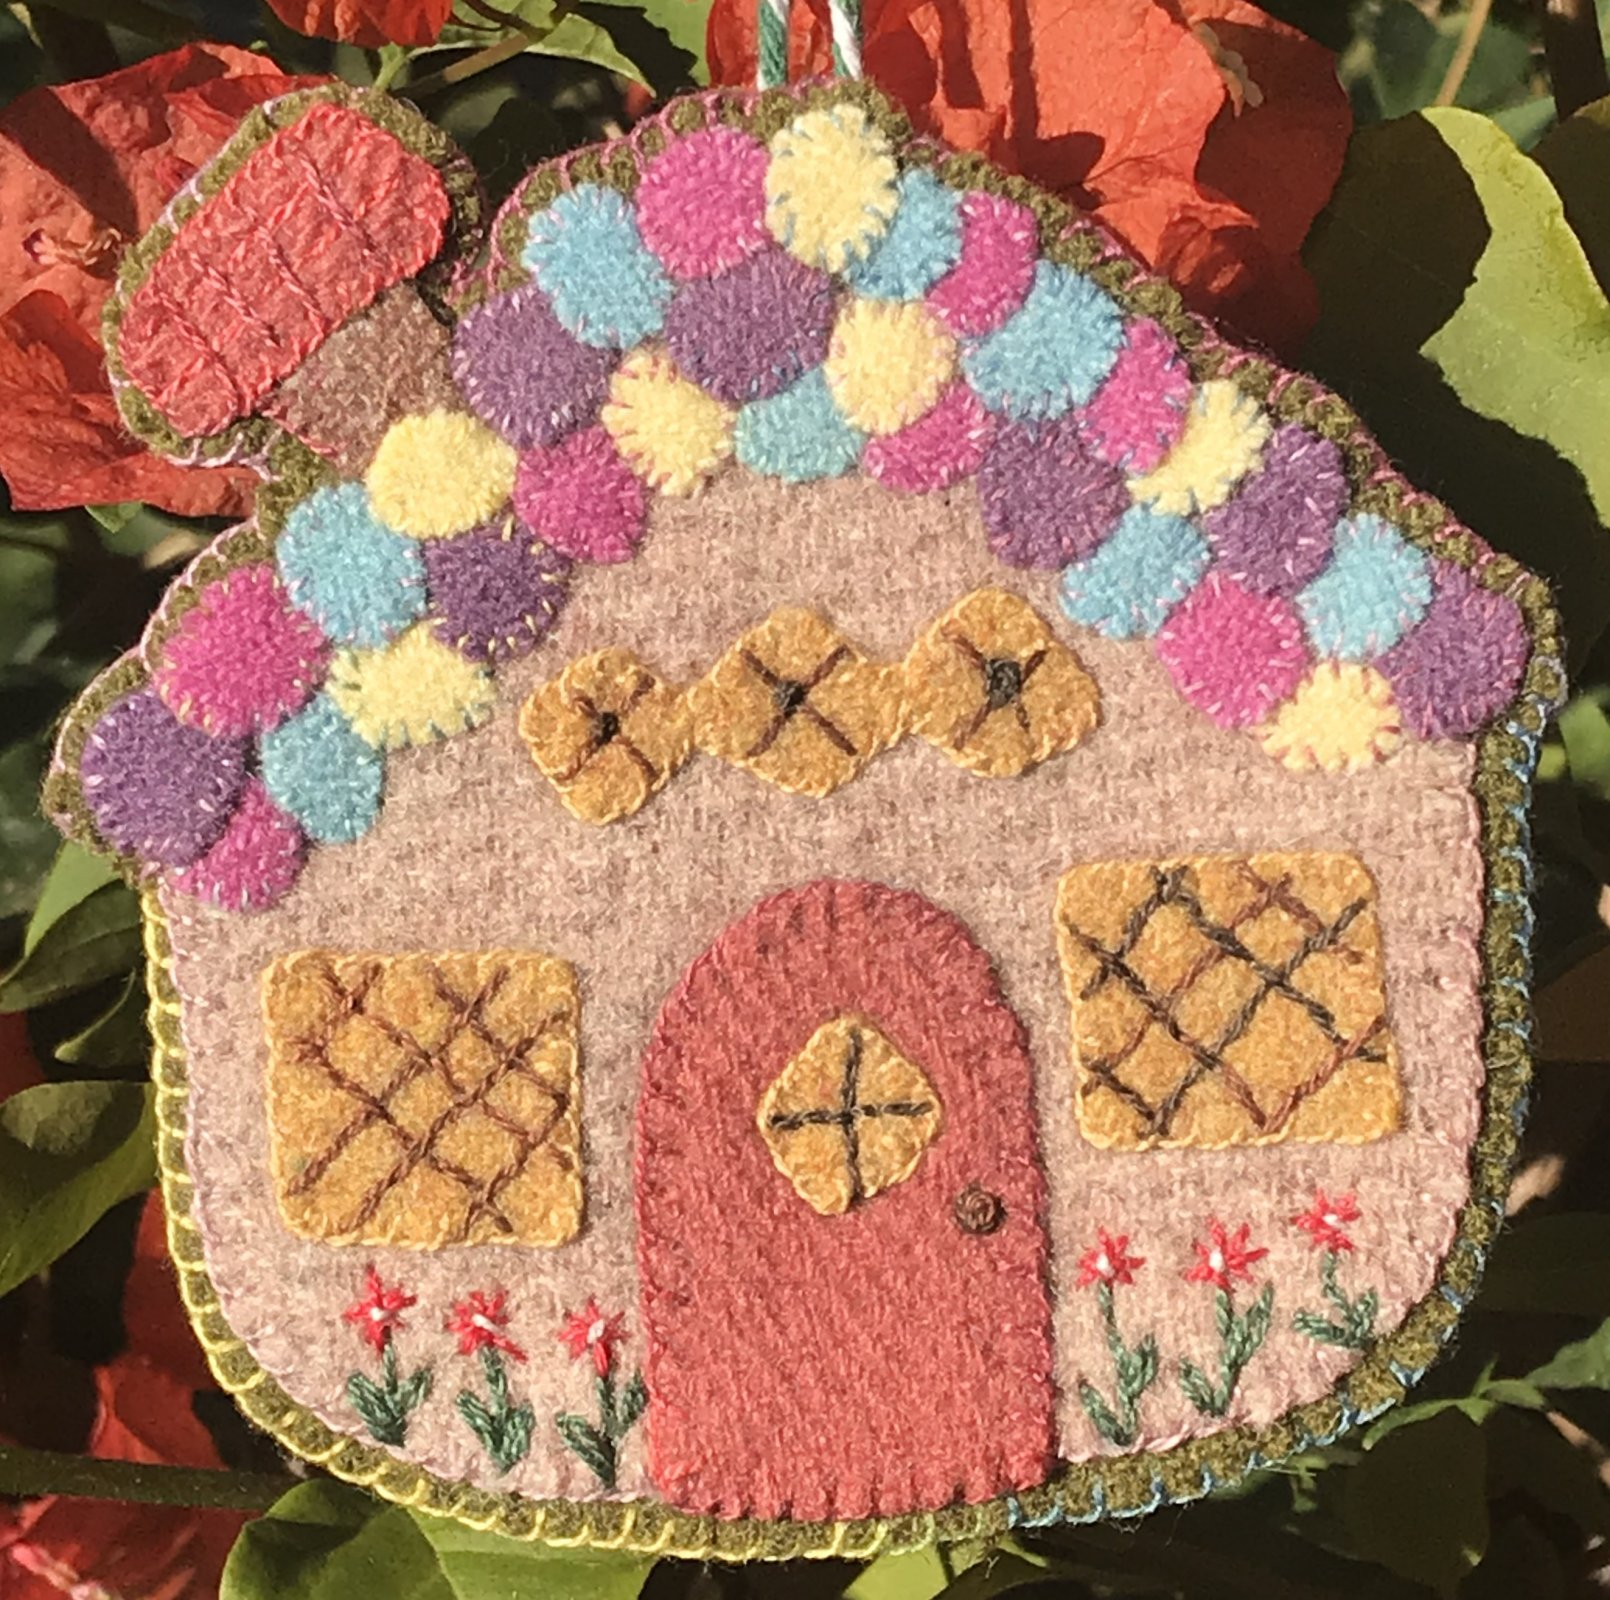 Sugar Plum Parish 1434 Reindeer Corn Road Ornament With Wool Kit with Printed Pattern